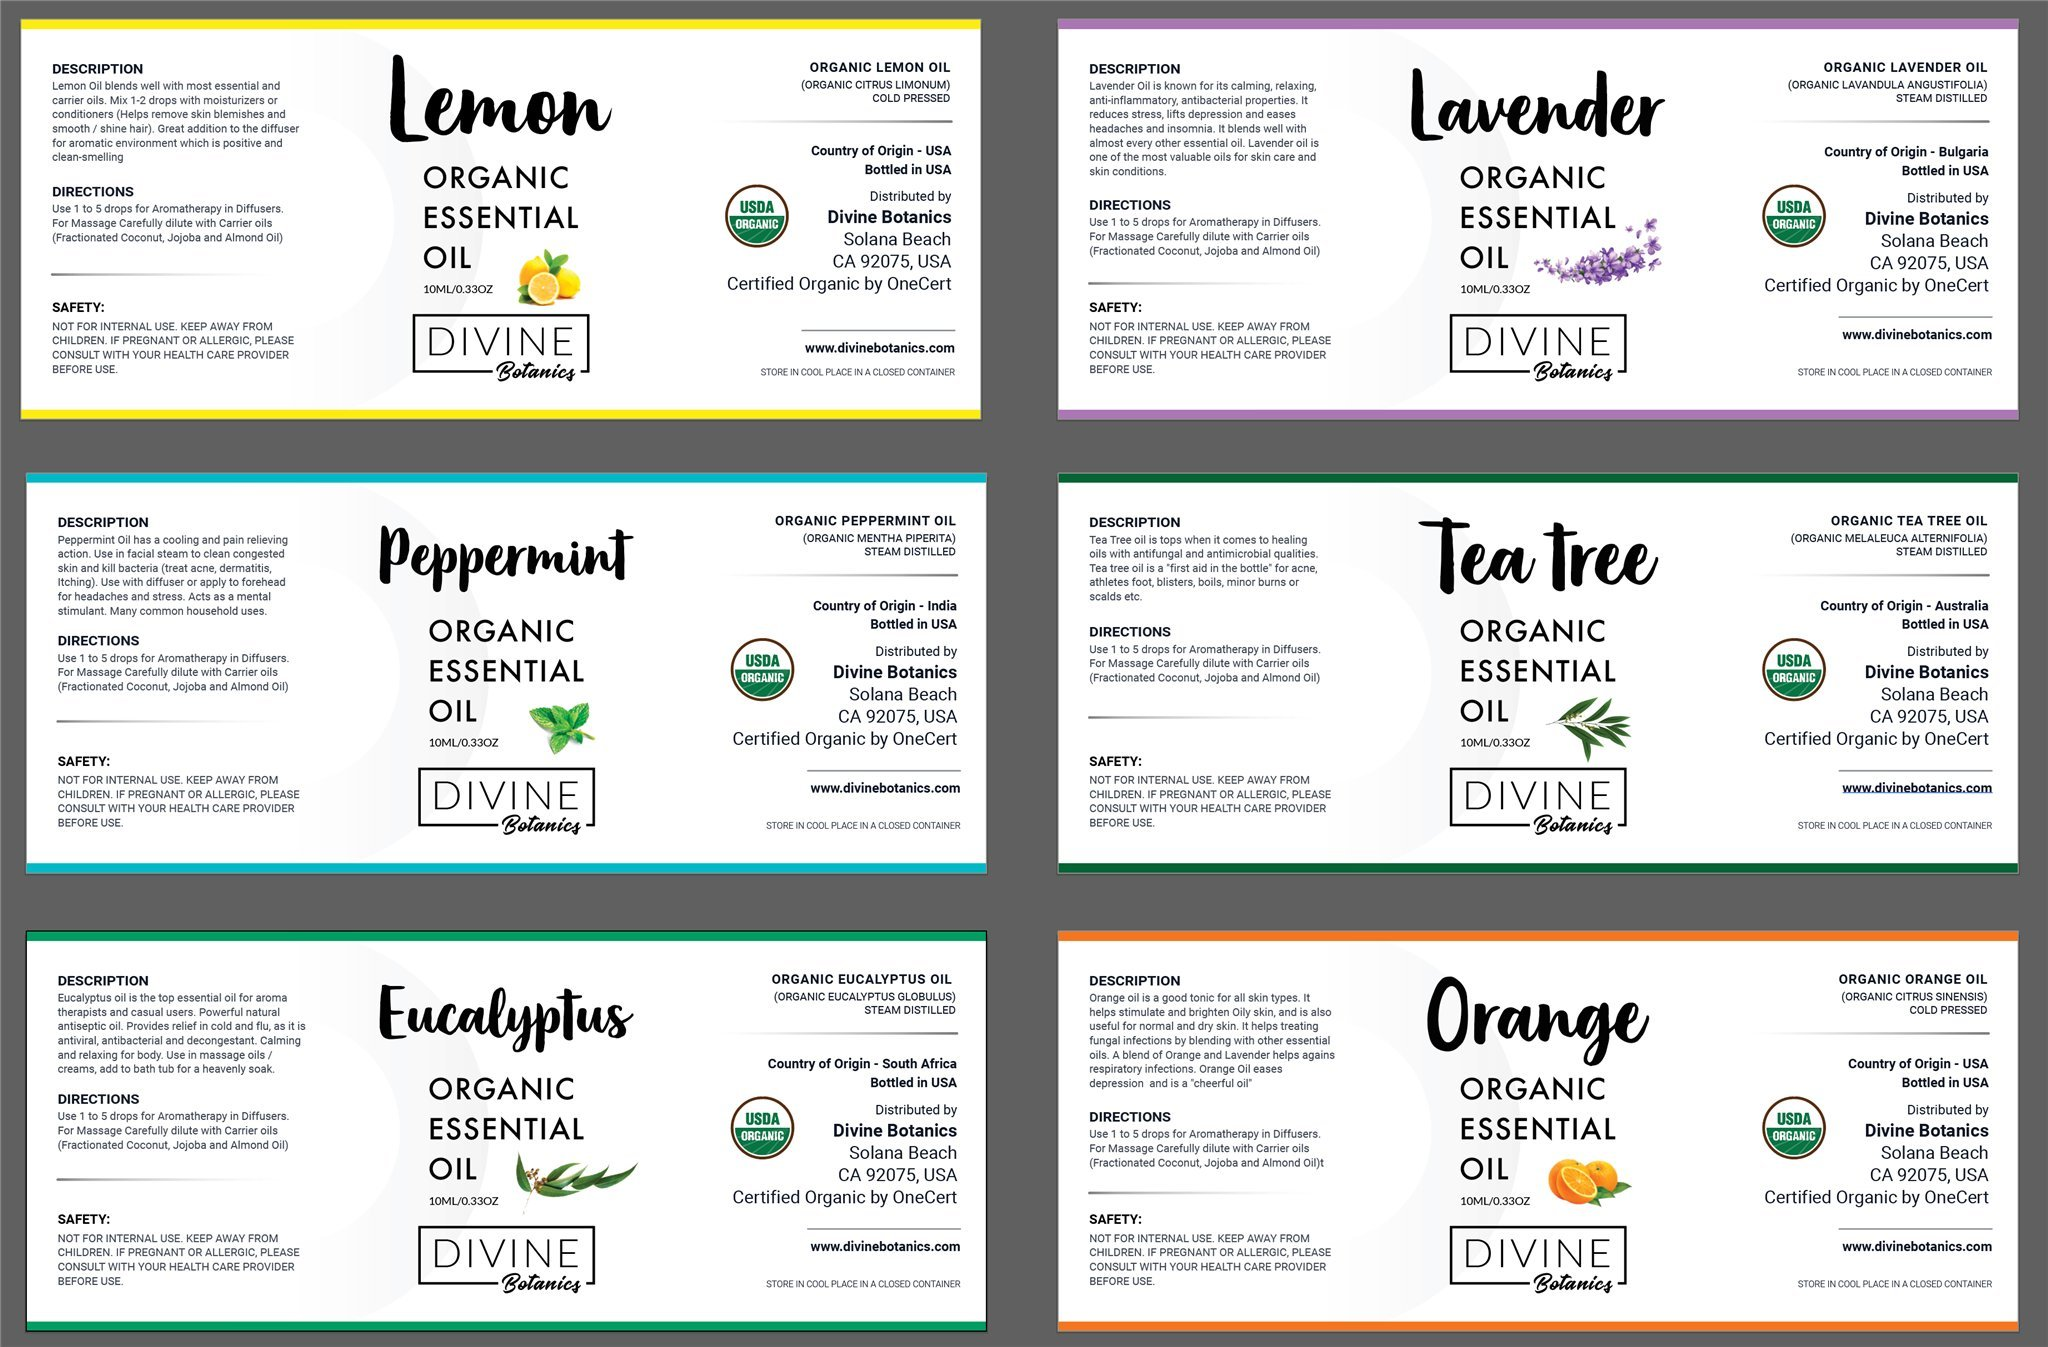 USDA Organic Essential Oils (Set of 6 10 ml) Natural Aromatherapy for Diffuser | Therapeutic Stress Relief & Relaxation Mothers Day Gift Set | Lavender Peppermint Tea Tree Lemon Orange Eucalyptus